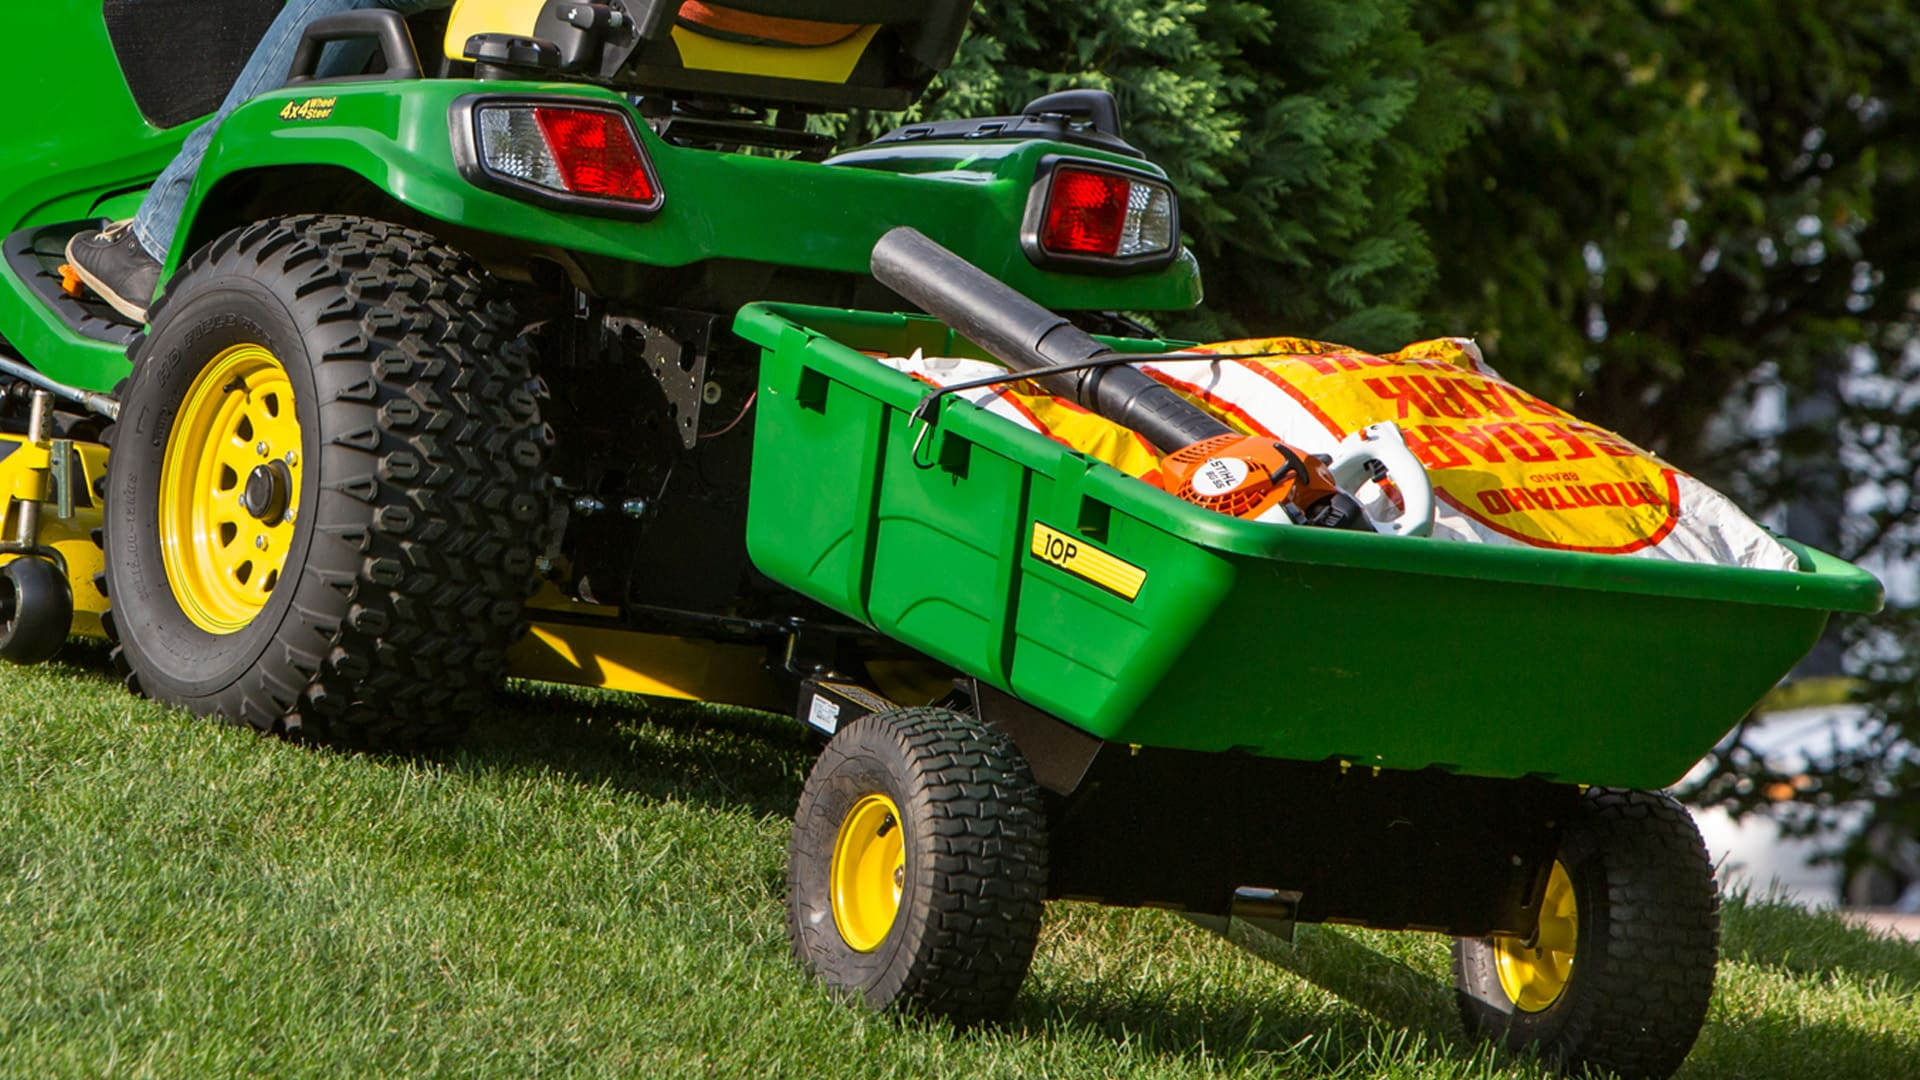 Closeup shot of a ride-on mower pulling a cart